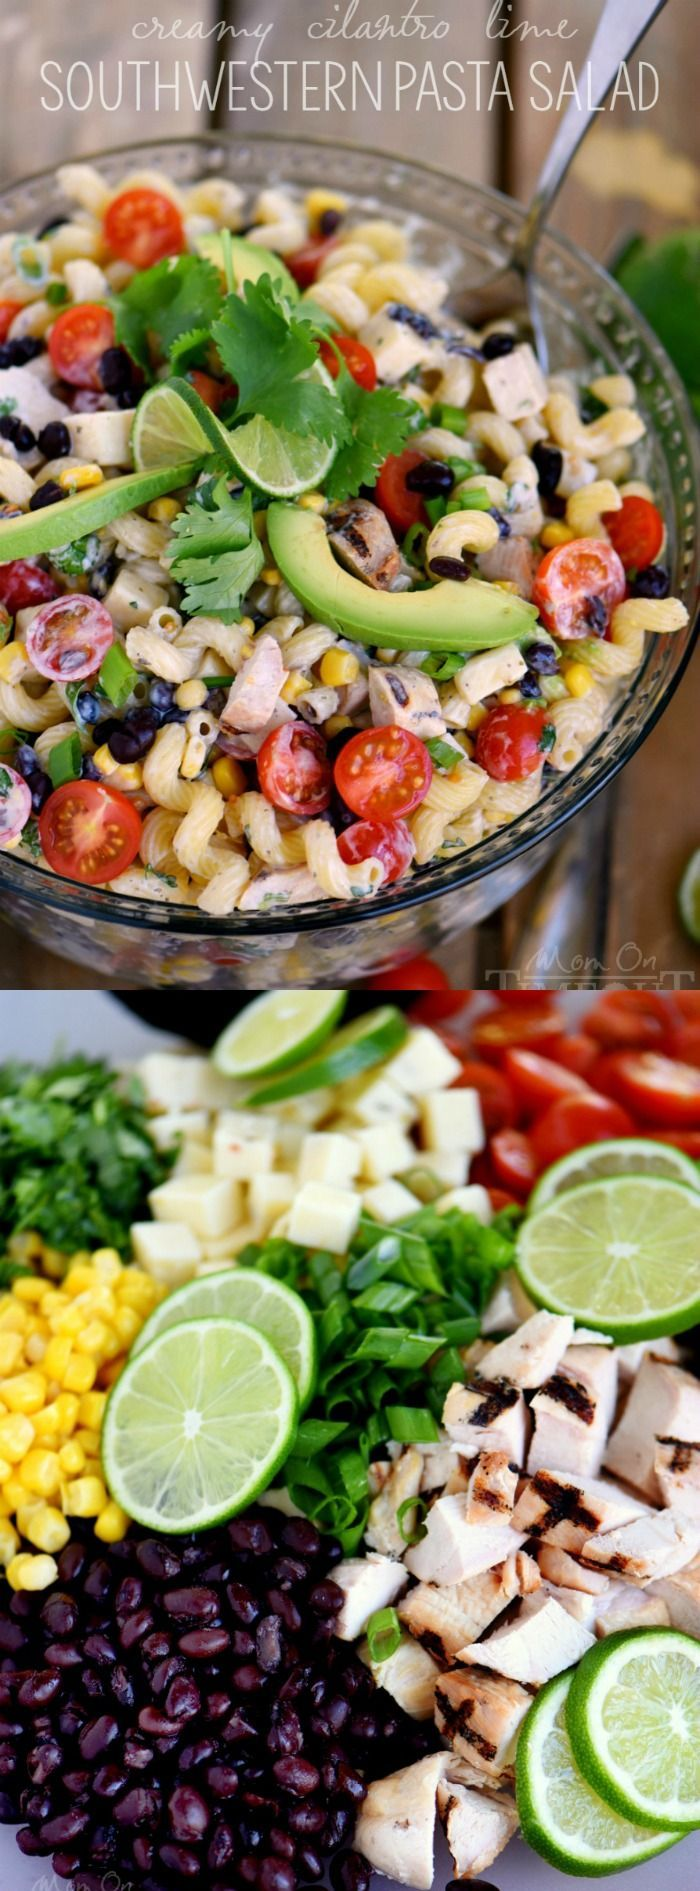 This Creamy Cilantro Lime Southwestern Pasta Salad recipe from Mom on Timeout is satisfying enough for an easy dinner or a tasty addition to any party, BBQ or get together!